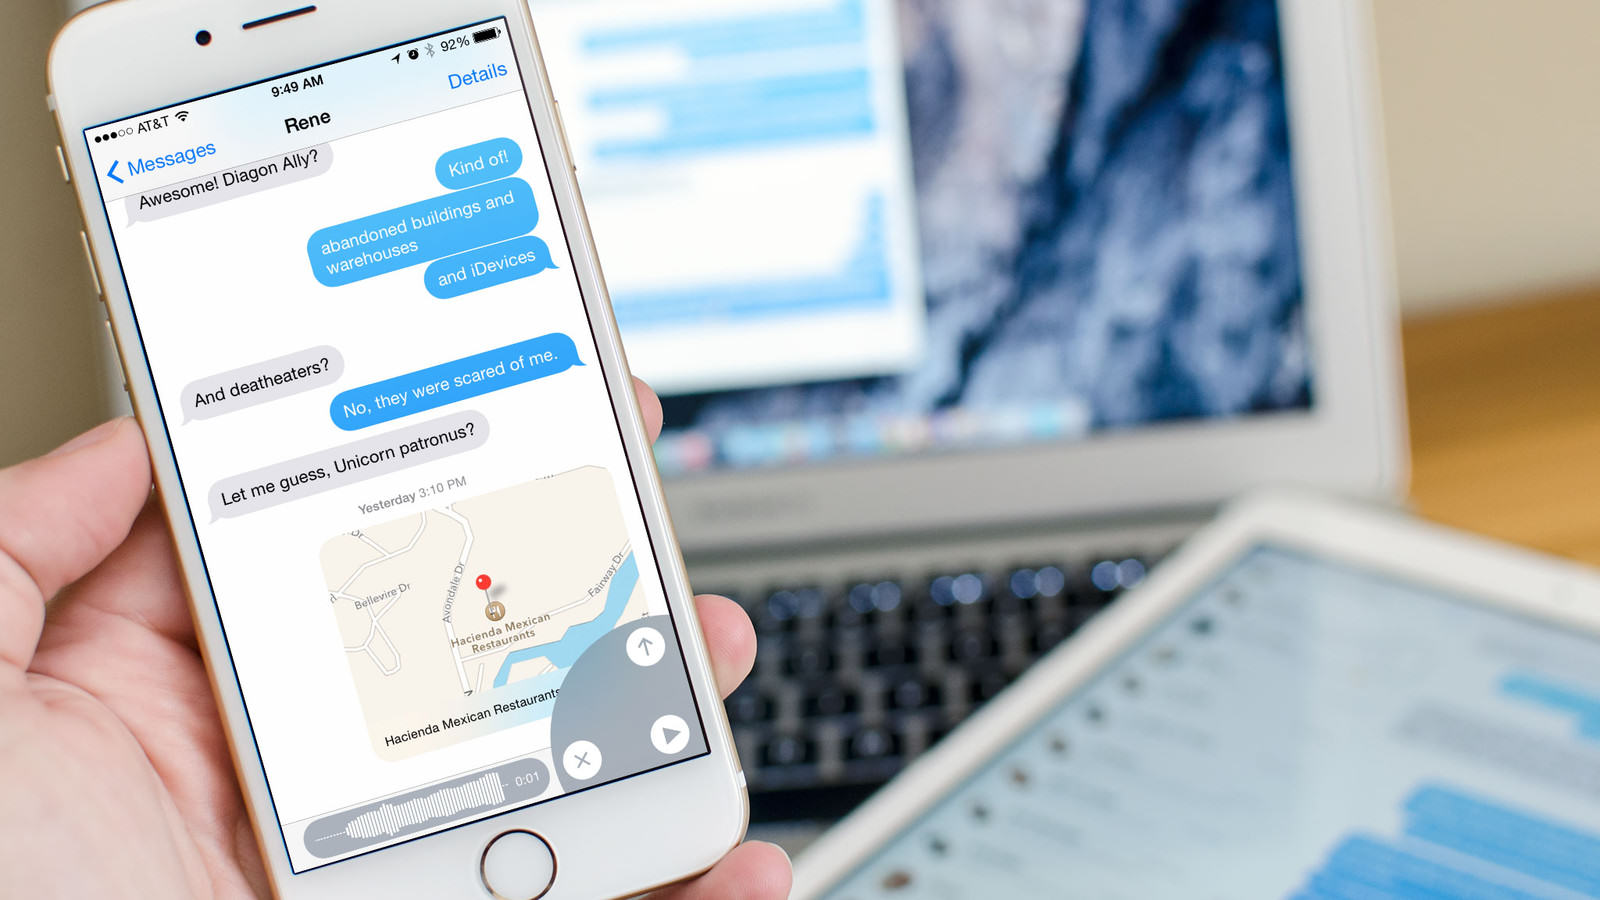 UNILAD imessage ultimate guide updated ios 8 hero46605 Someone Has Won $1 Million For Hacking The iPhone